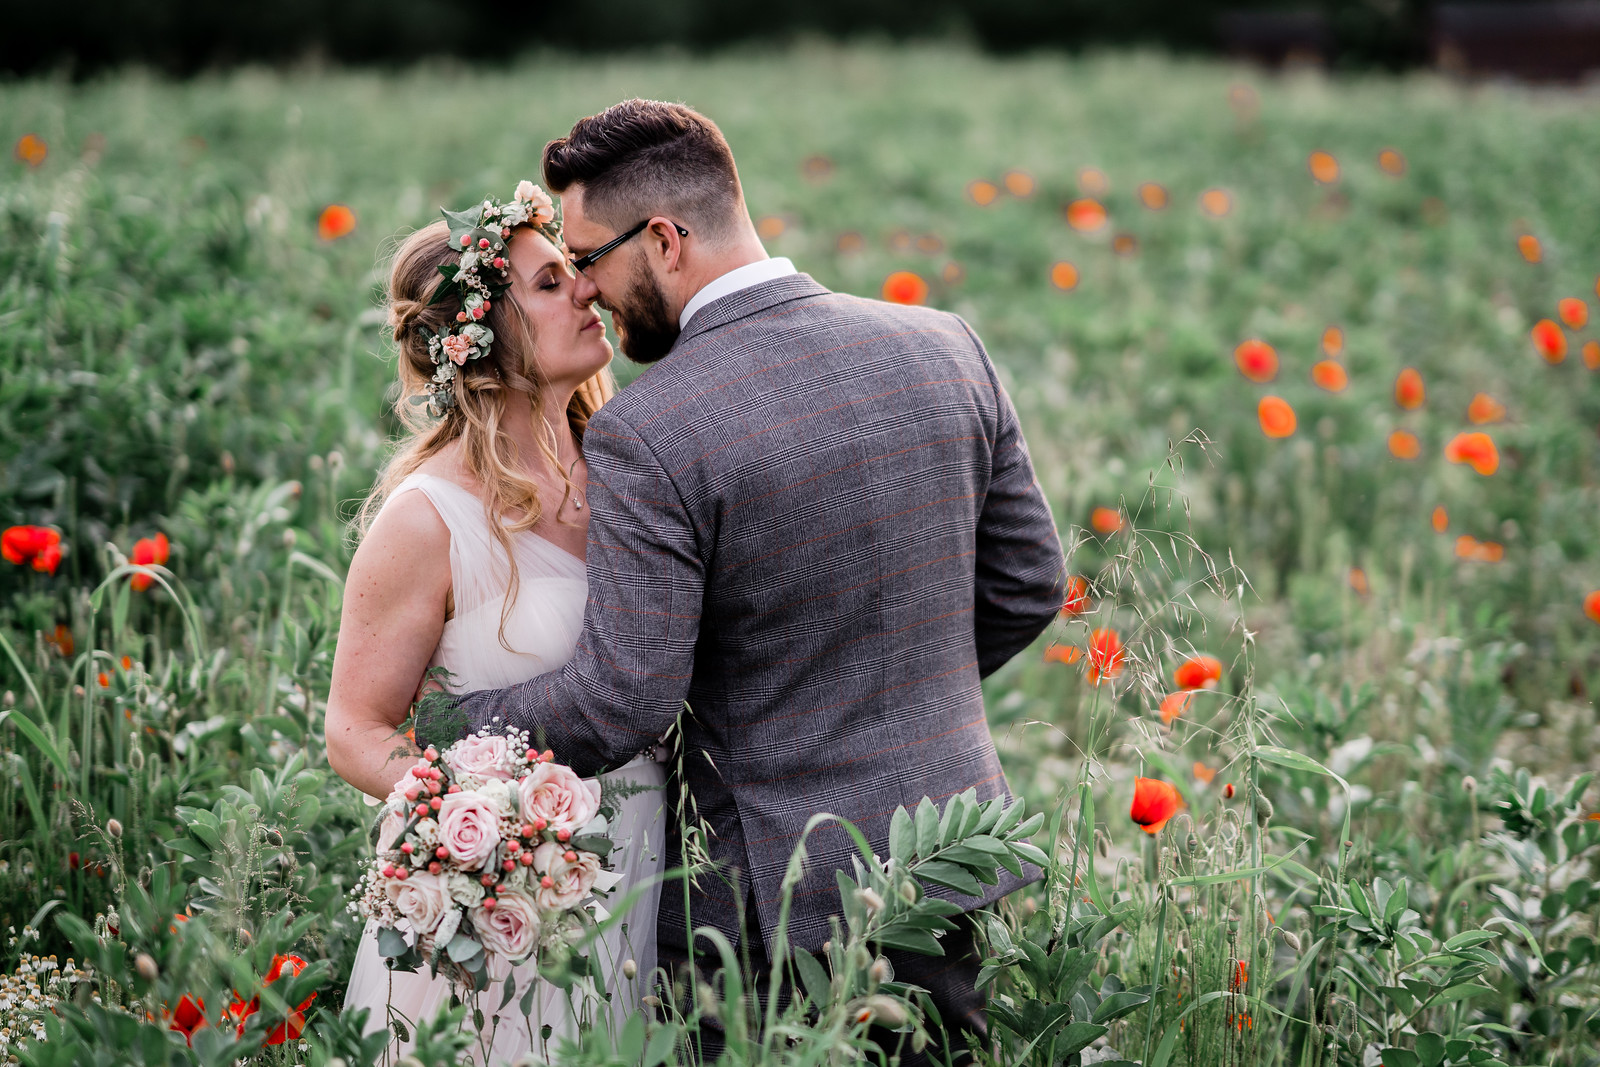 Bride and groom wedding photo surrounded by beauty - Carmarthenshire Wedding photographers